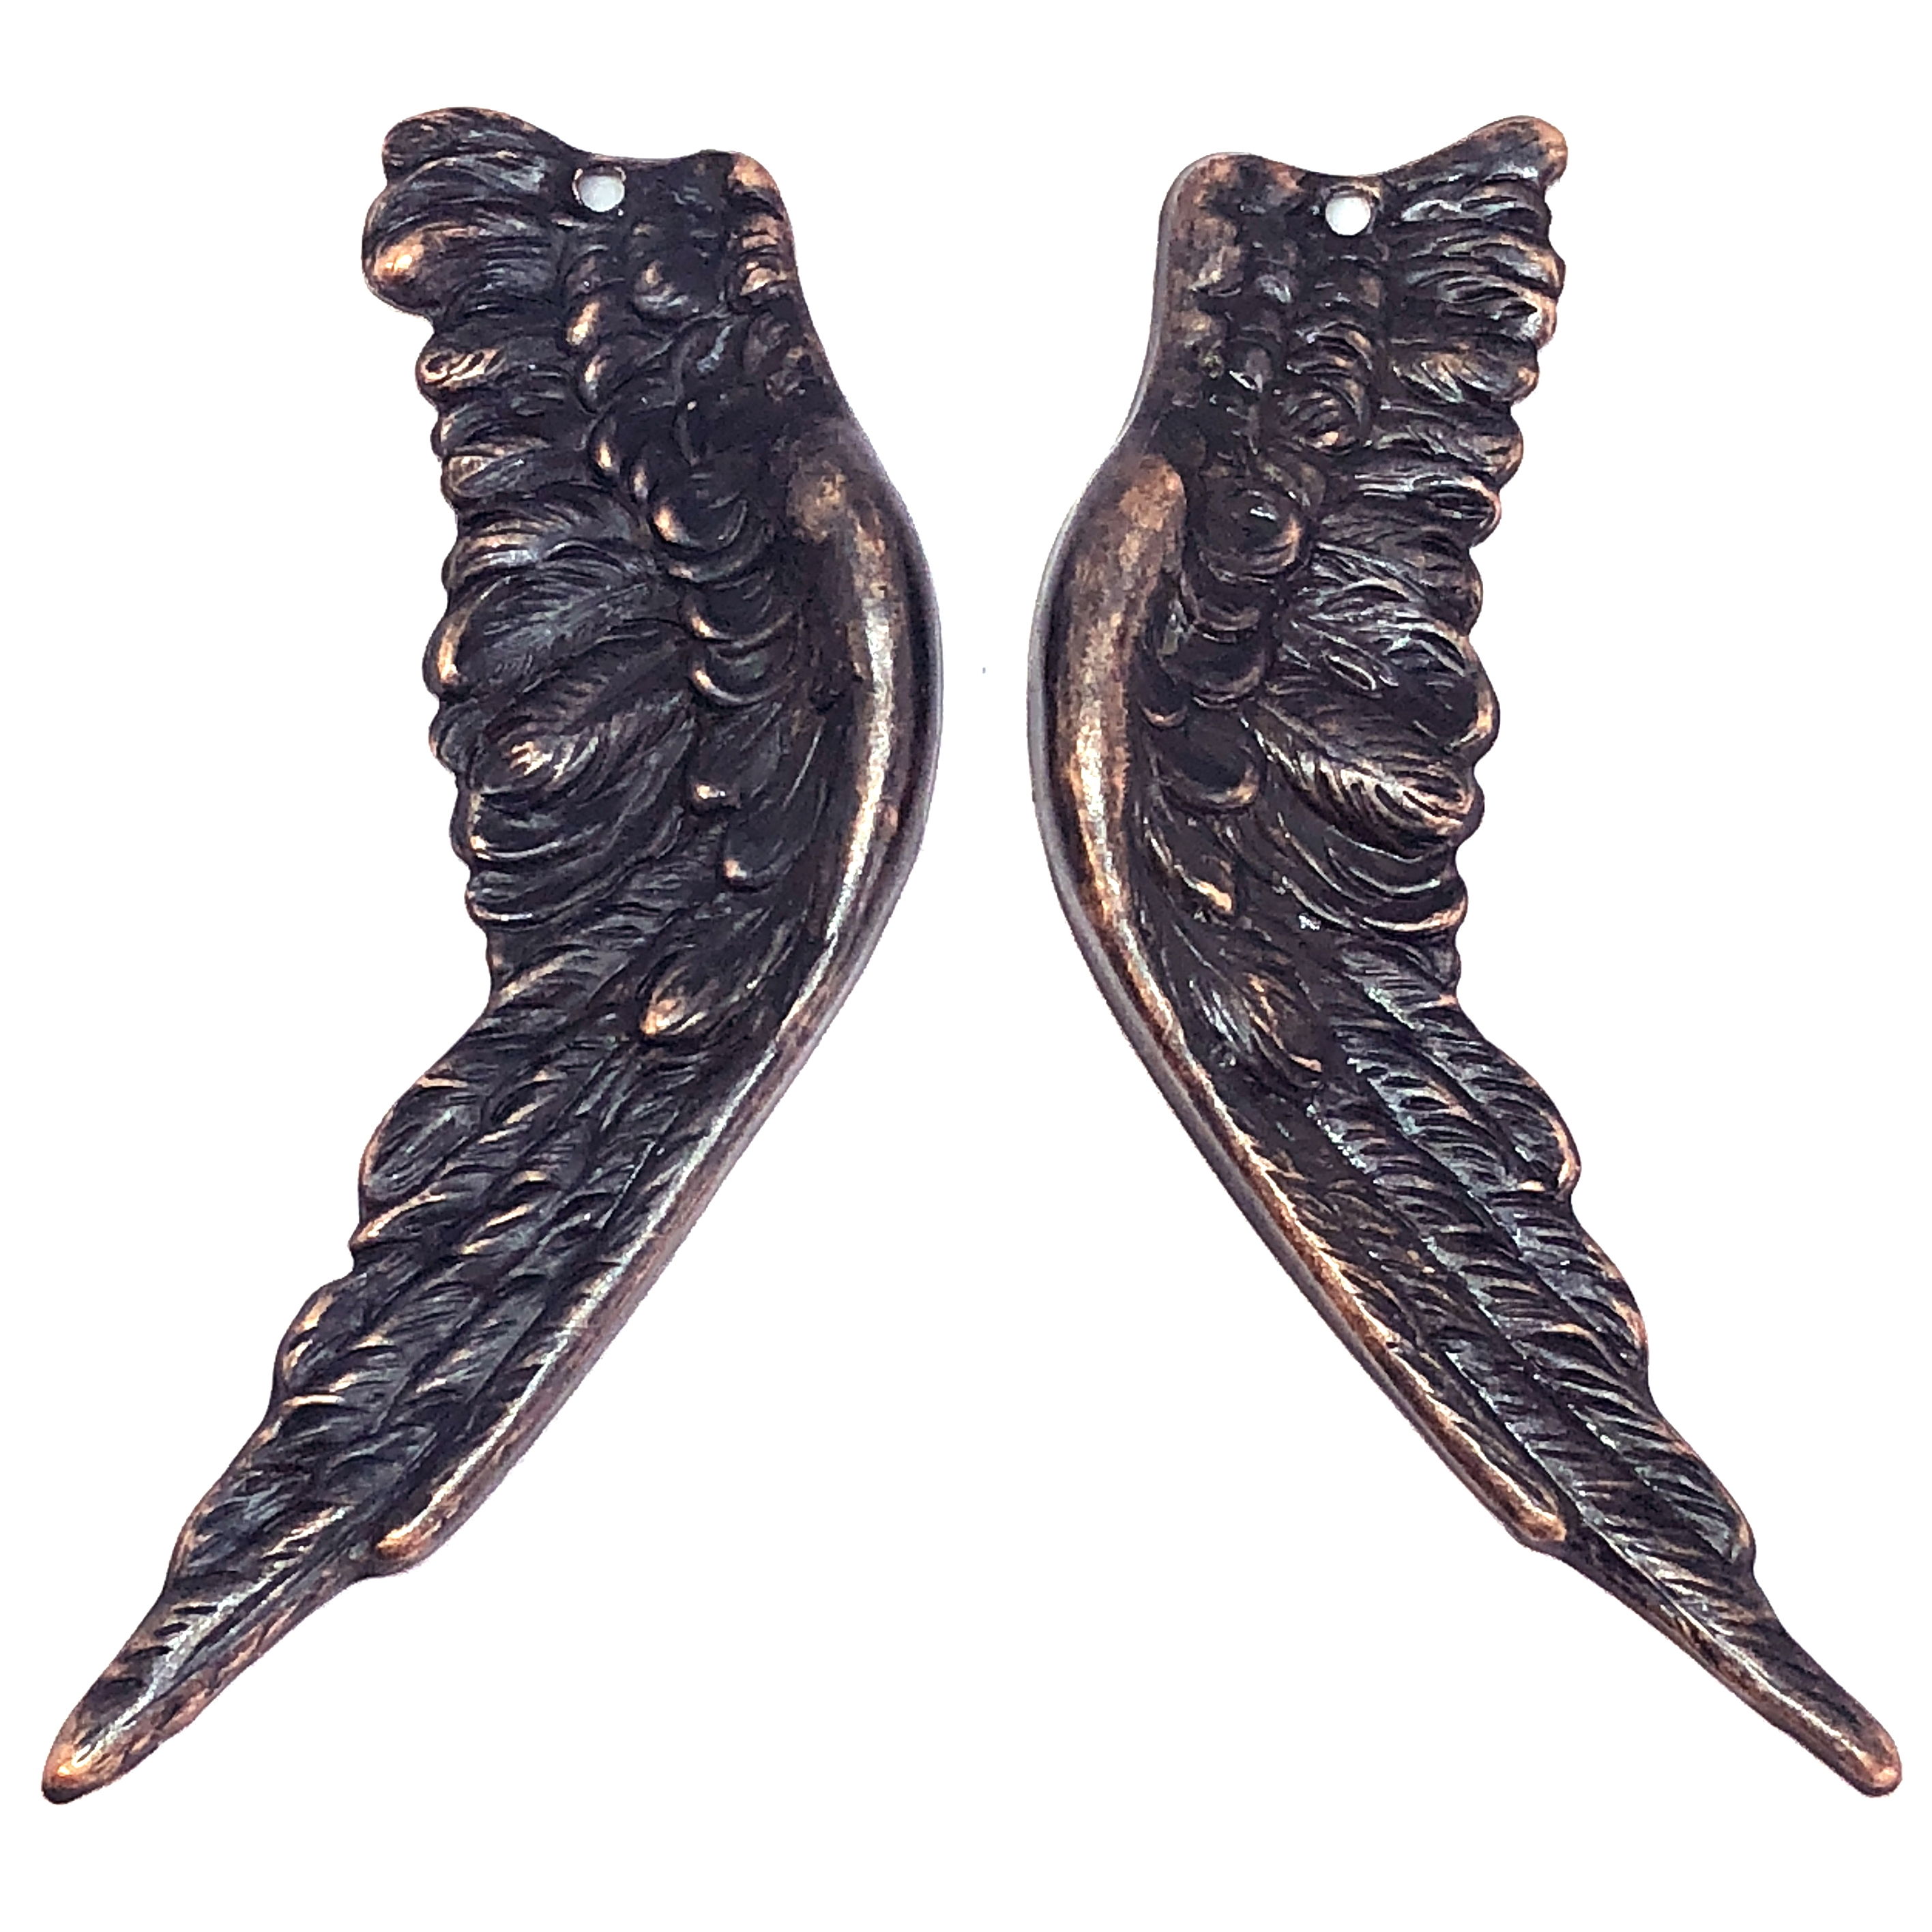 brass wings, bird wings, rusted iron, 08572, copper accents, copper, wings, vintage jewelry supplies, brass jewelry parts, jewelry making supplies, US made, nickel free, Bsue Boutiques